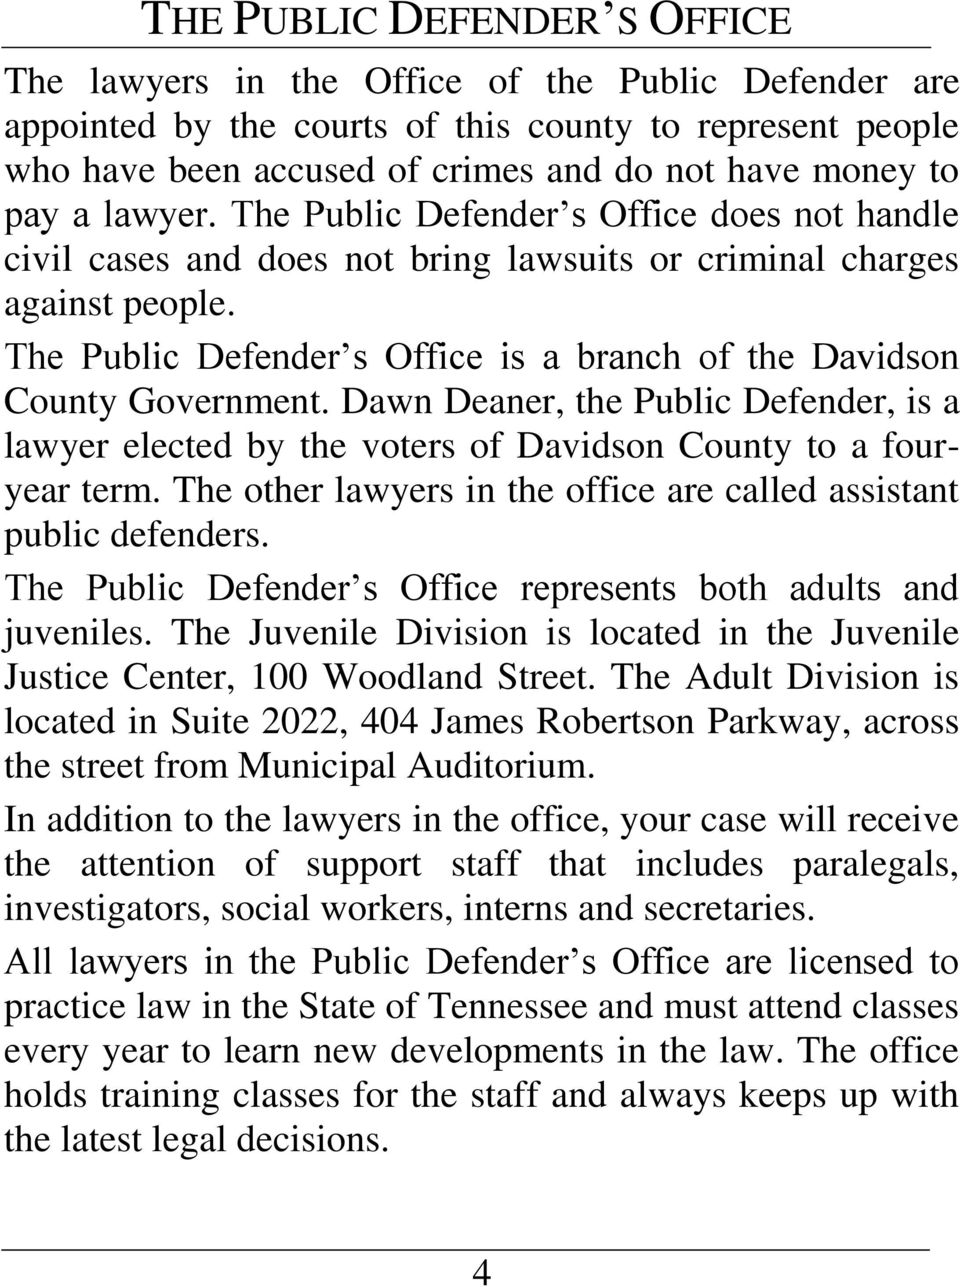 The Public Defender s Office is a branch of the Davidson County Government. Dawn Deaner, the Public Defender, is a lawyer elected by the voters of Davidson County to a fouryear term.